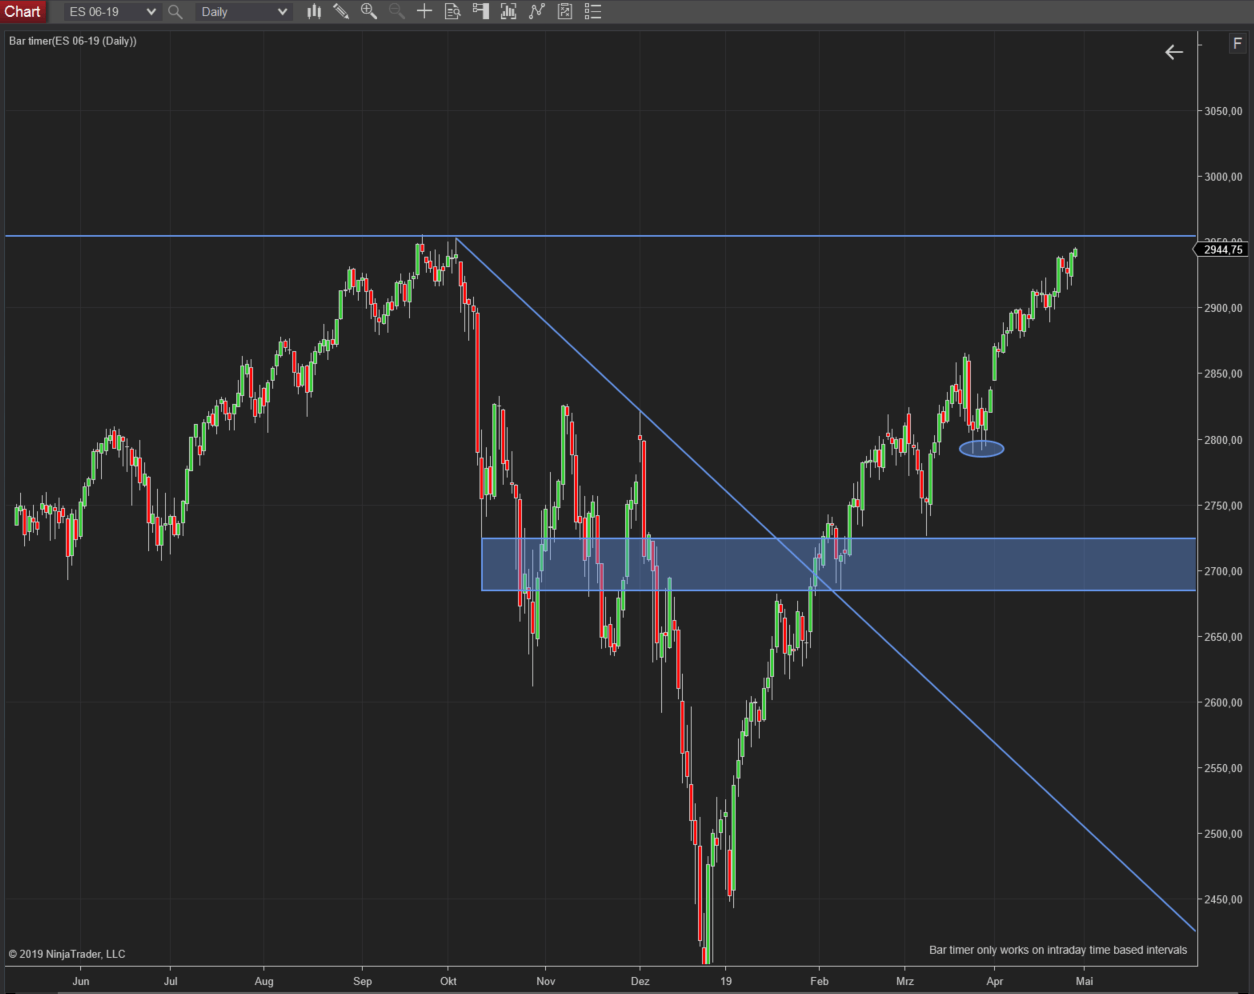 SP500 (ES Future) Tageschart